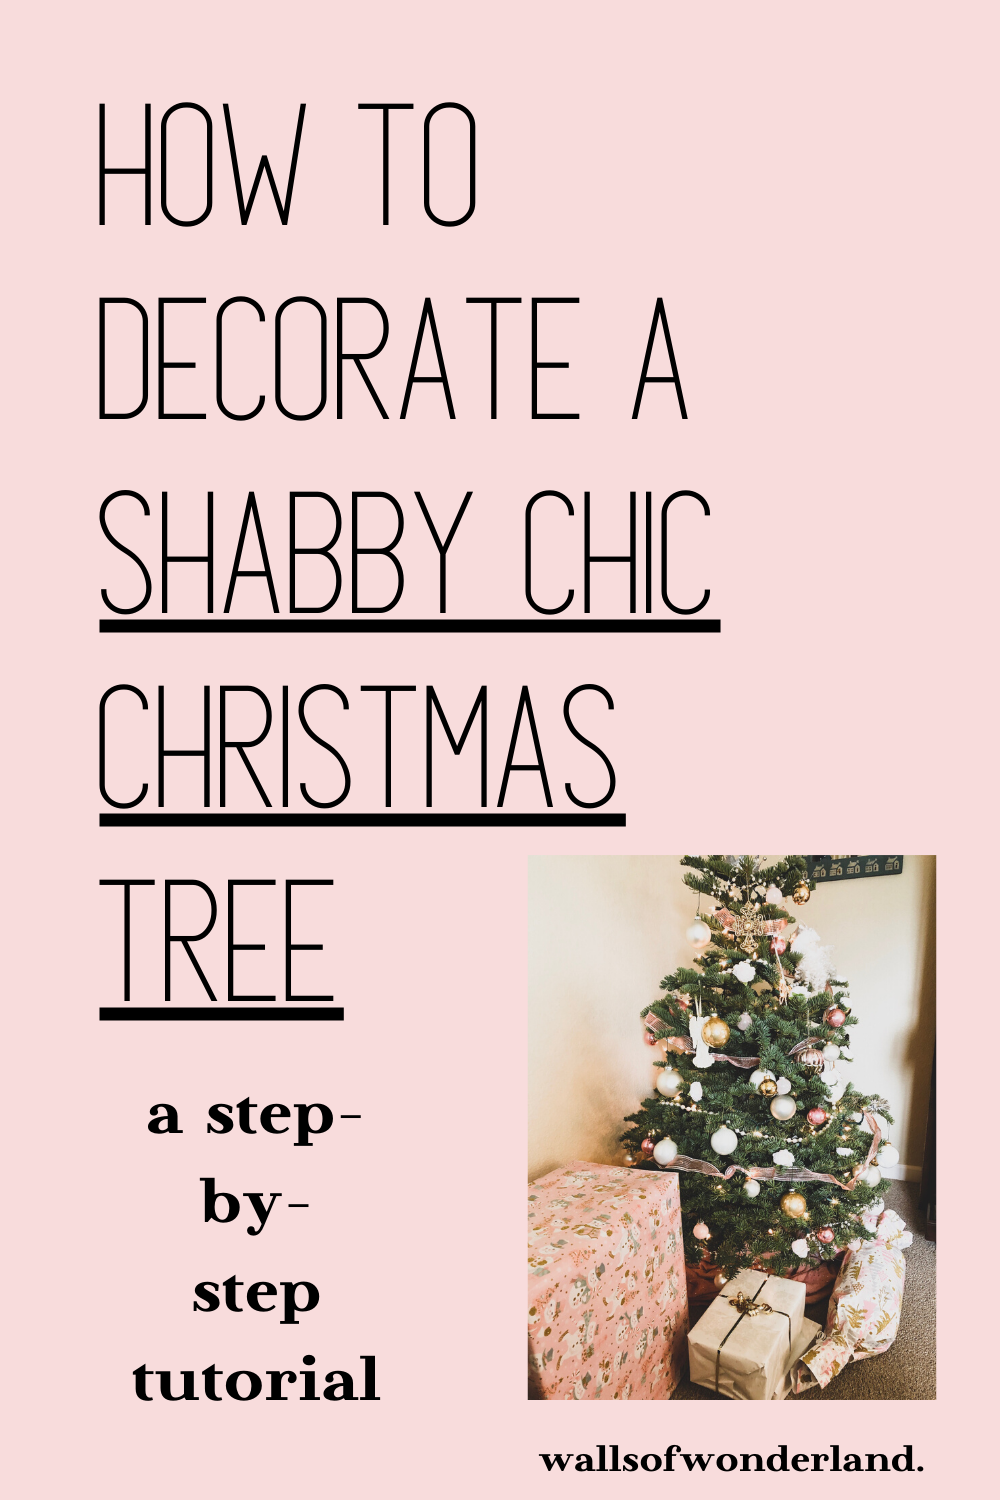 How To Decorate A Shabby Chic Christmas Tree In 2020 Shabby Chic Christmas Tree Shabby Chic Christmas Chic Christmas